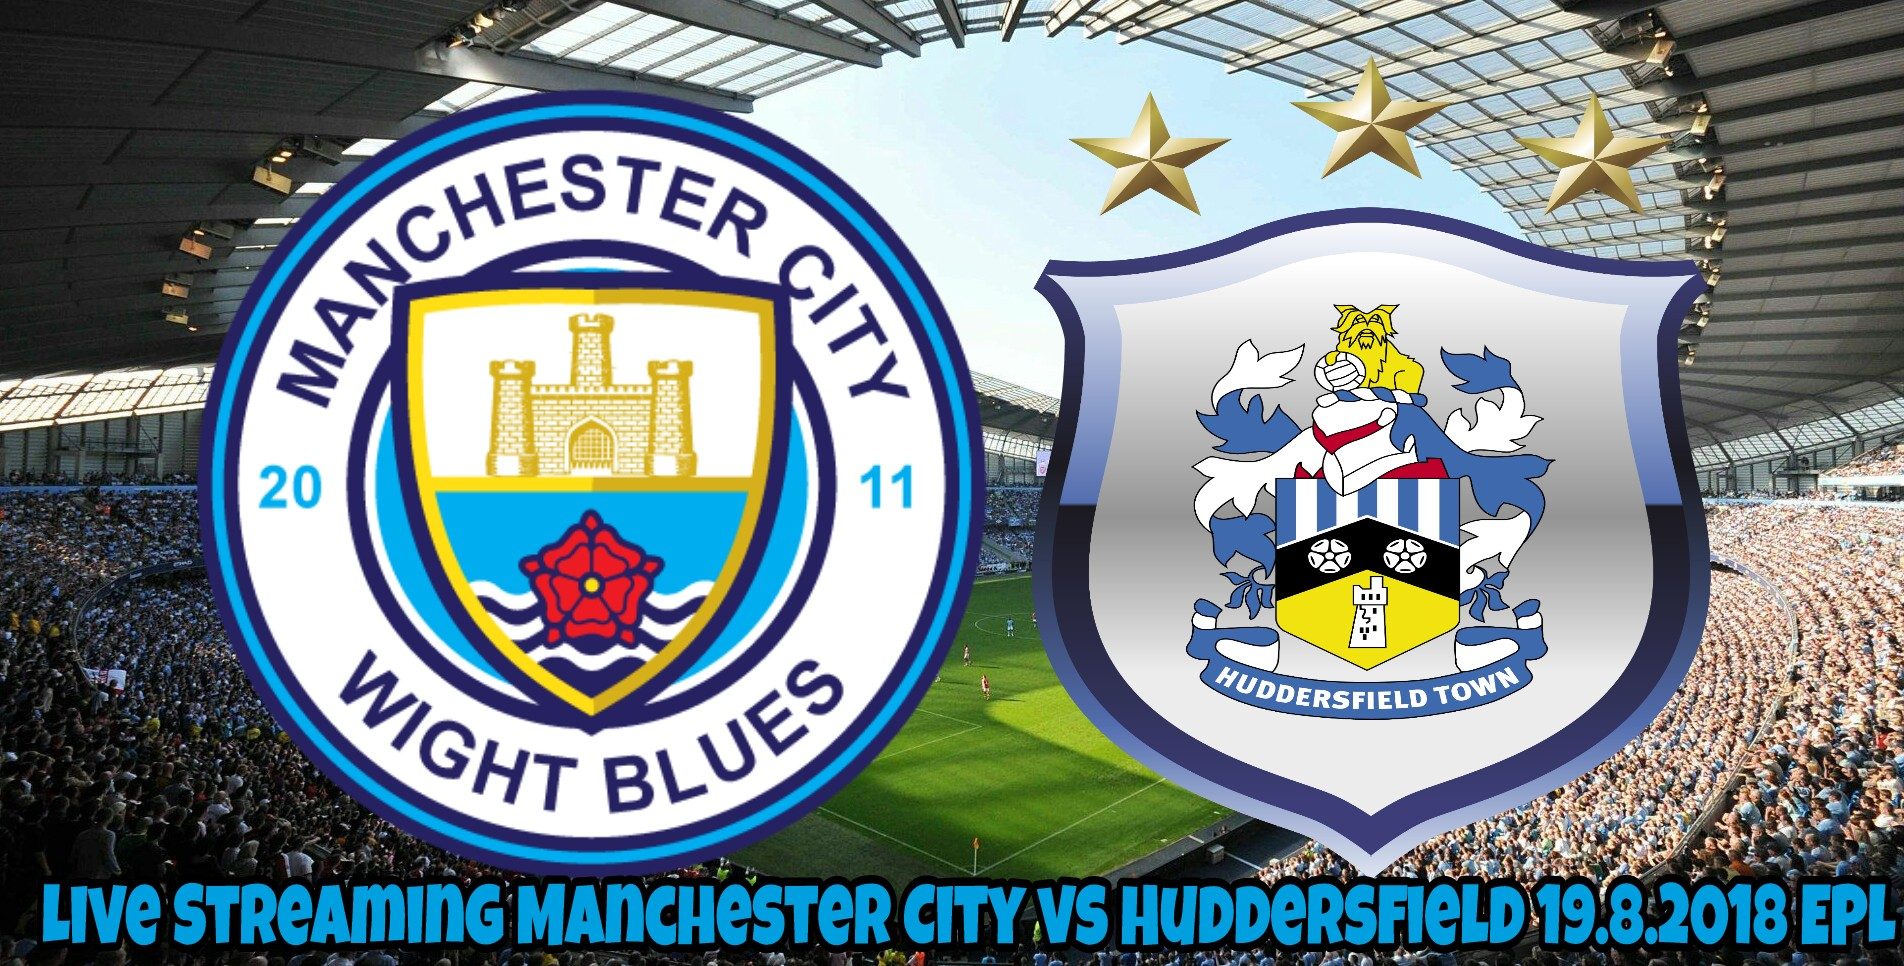 Live Streaming Manchester City vs Huddersfield 19.8.2018 EPL